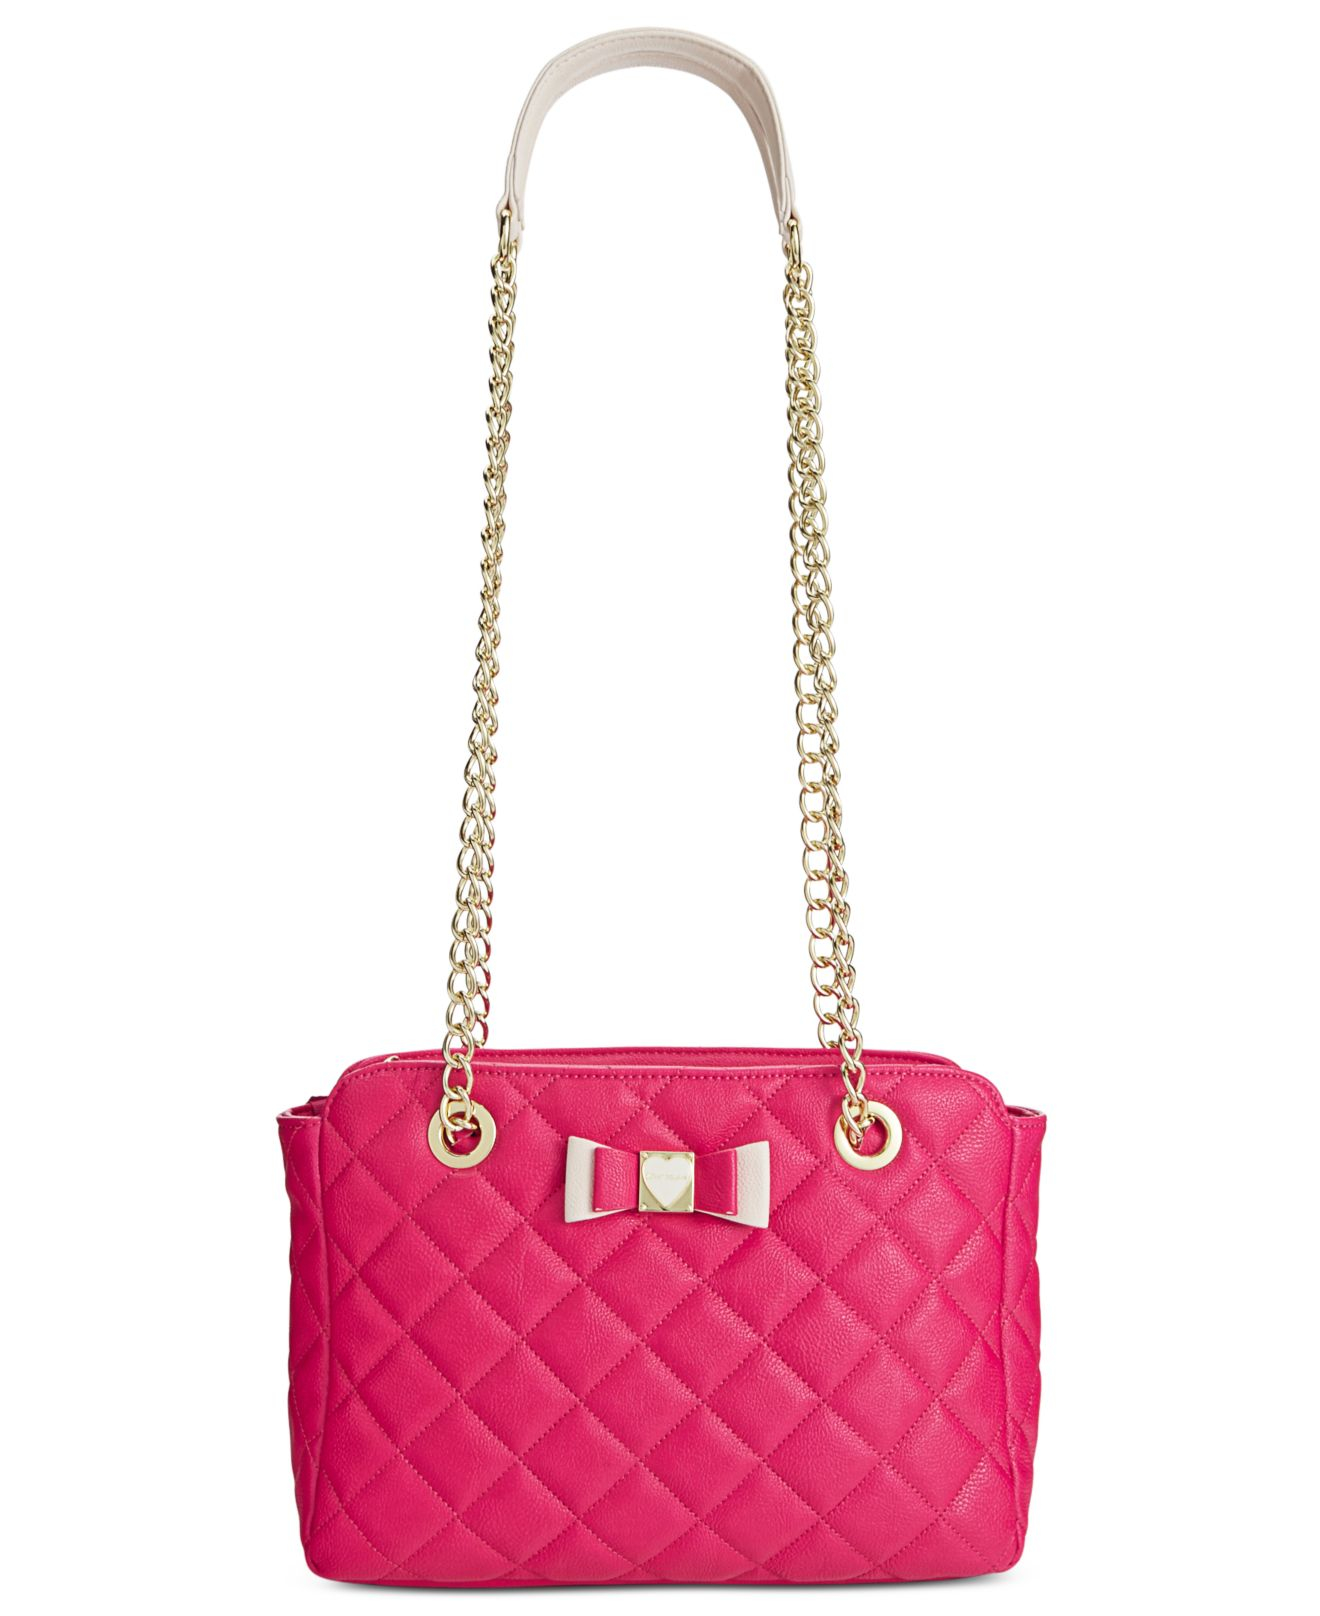 betsey johnson quilted shoulder bag in multicolor fuschia